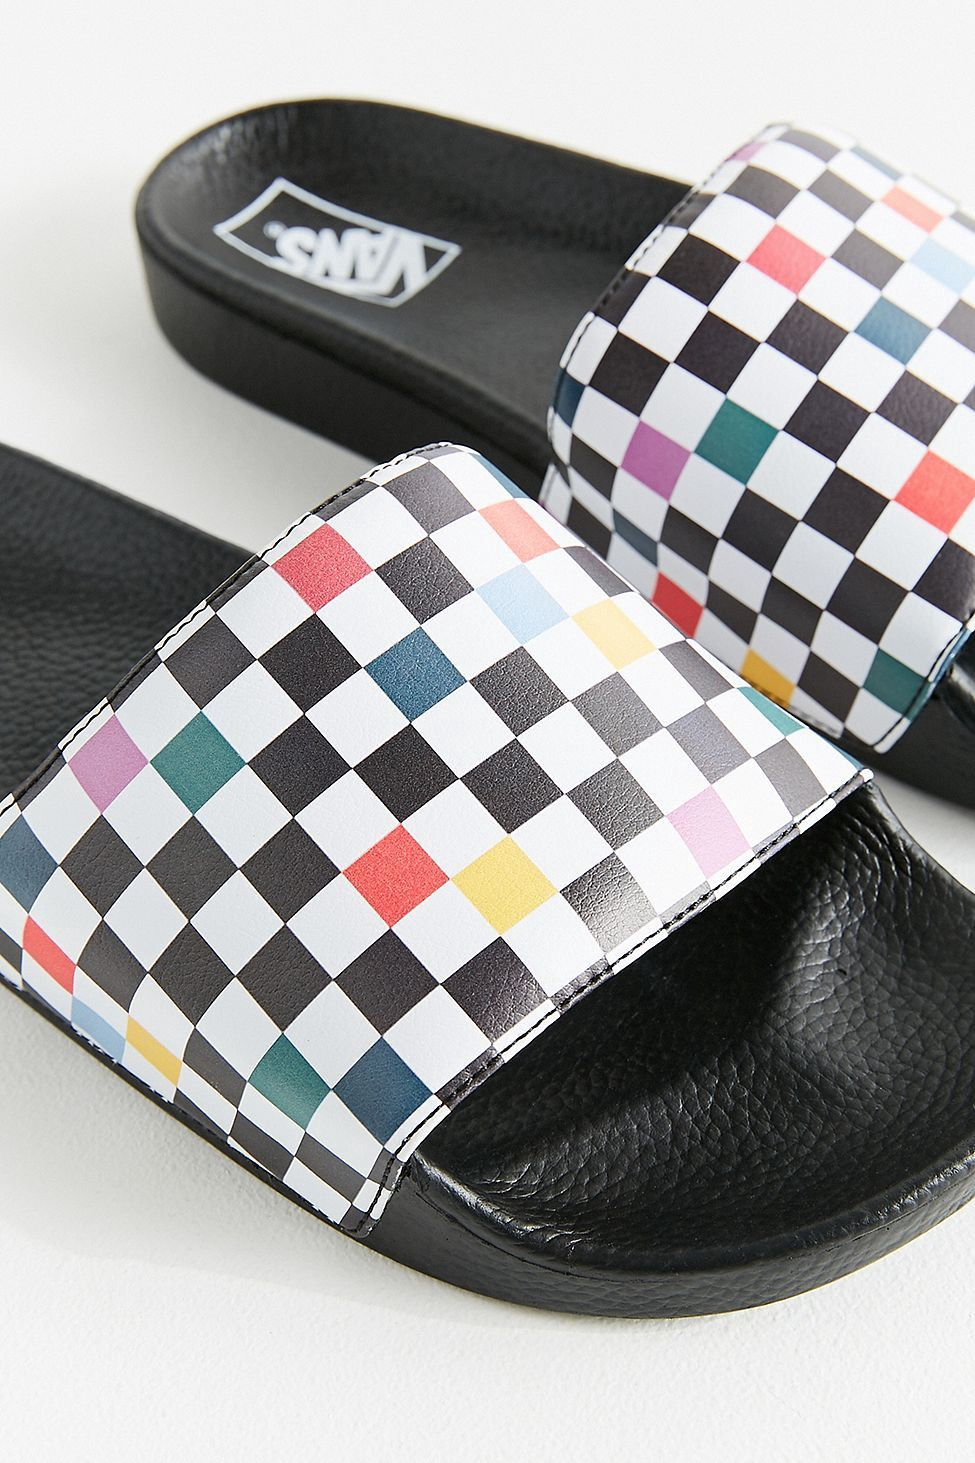 0231d28fc80 Urban Outfitters Vans Party Checkerboard Pool Slide - W 9.5 M 8 ...